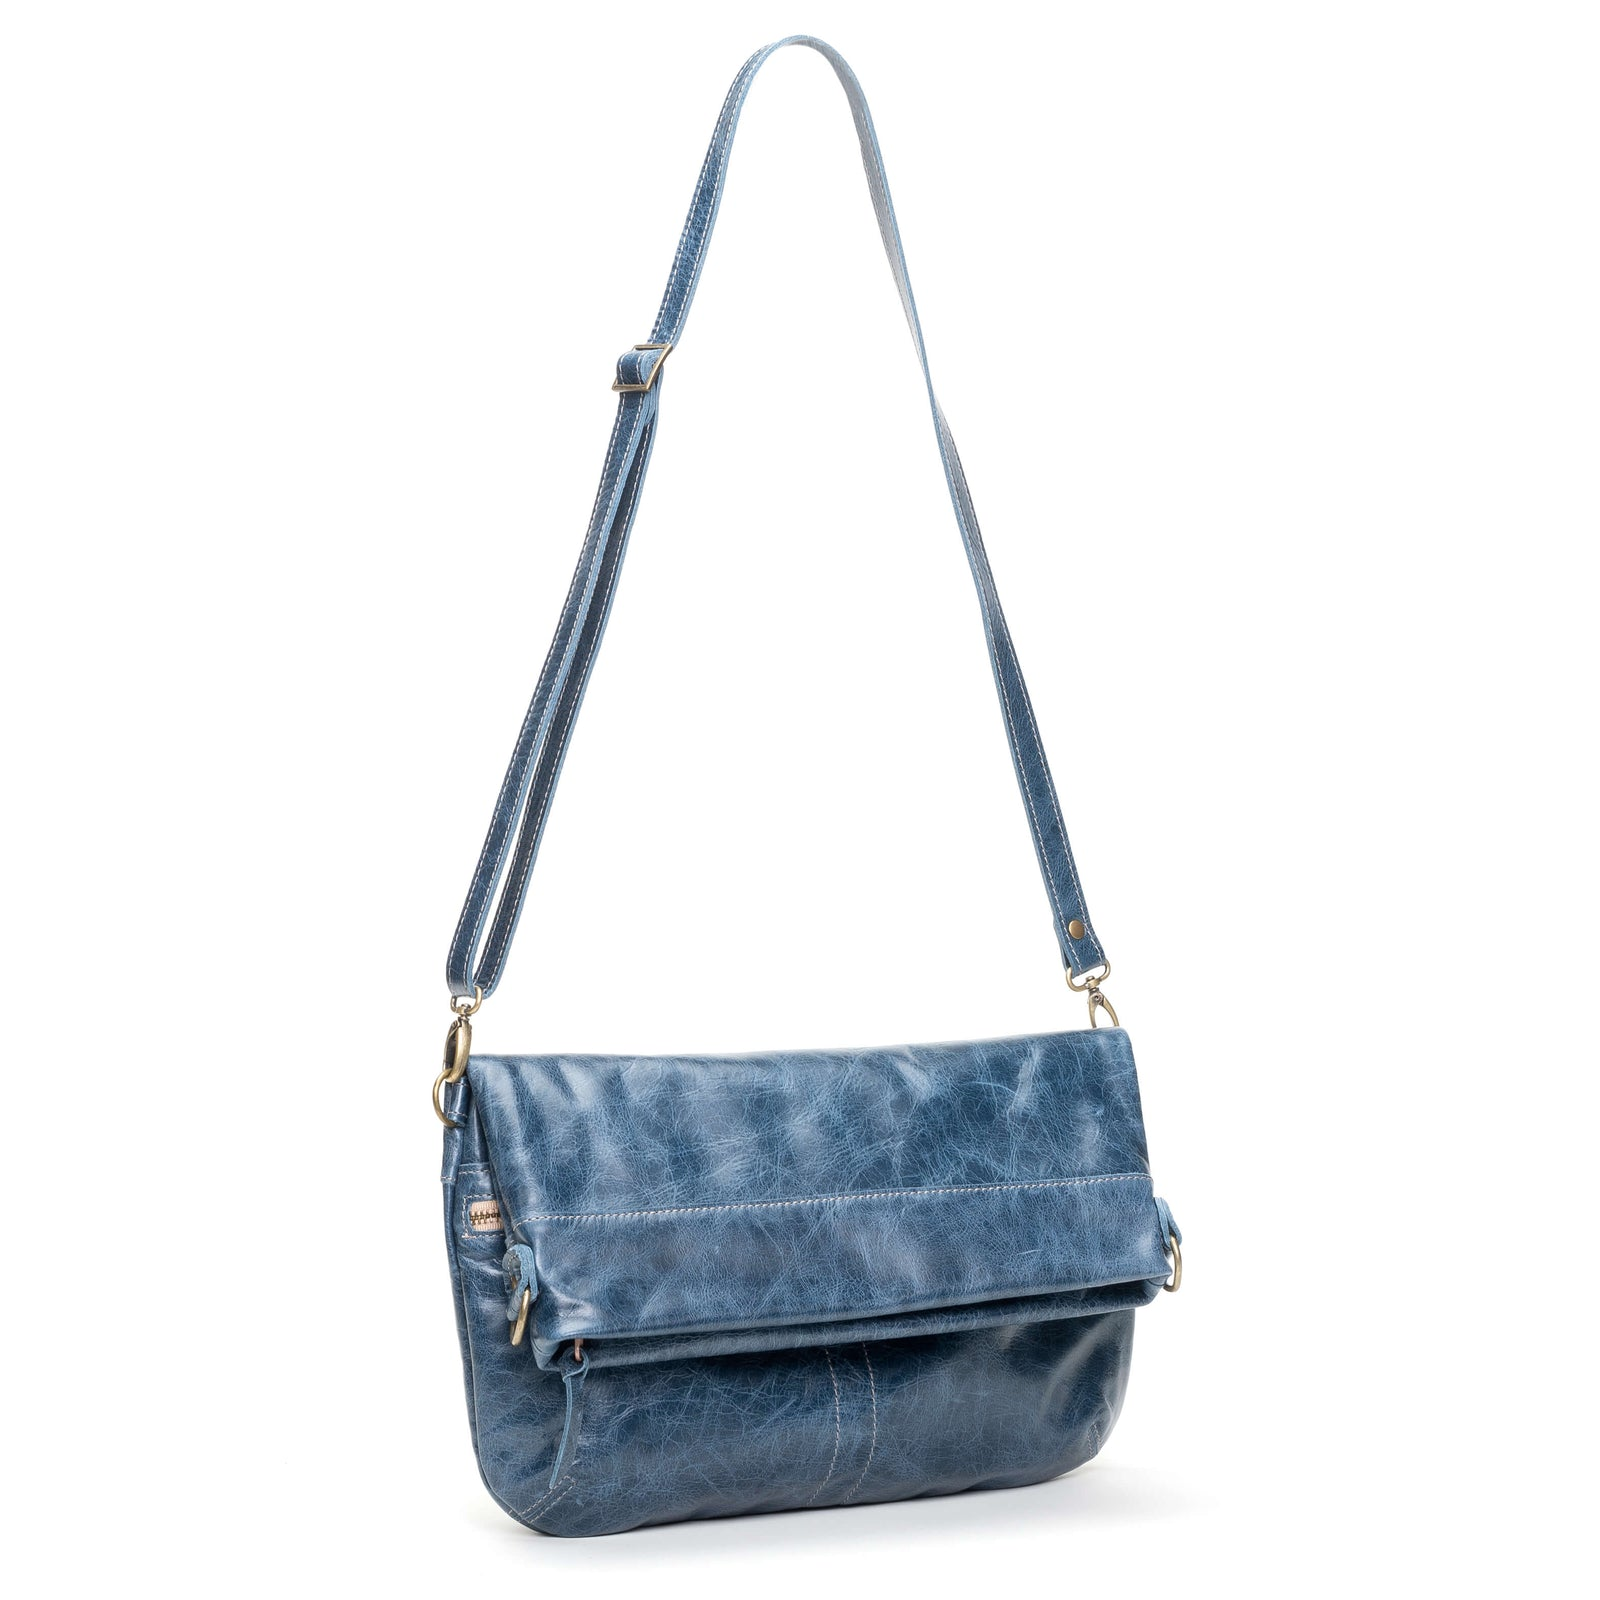 Mini-Lauren Crossbody - Cape Cod - Brynn Capella, Medium Crossbody